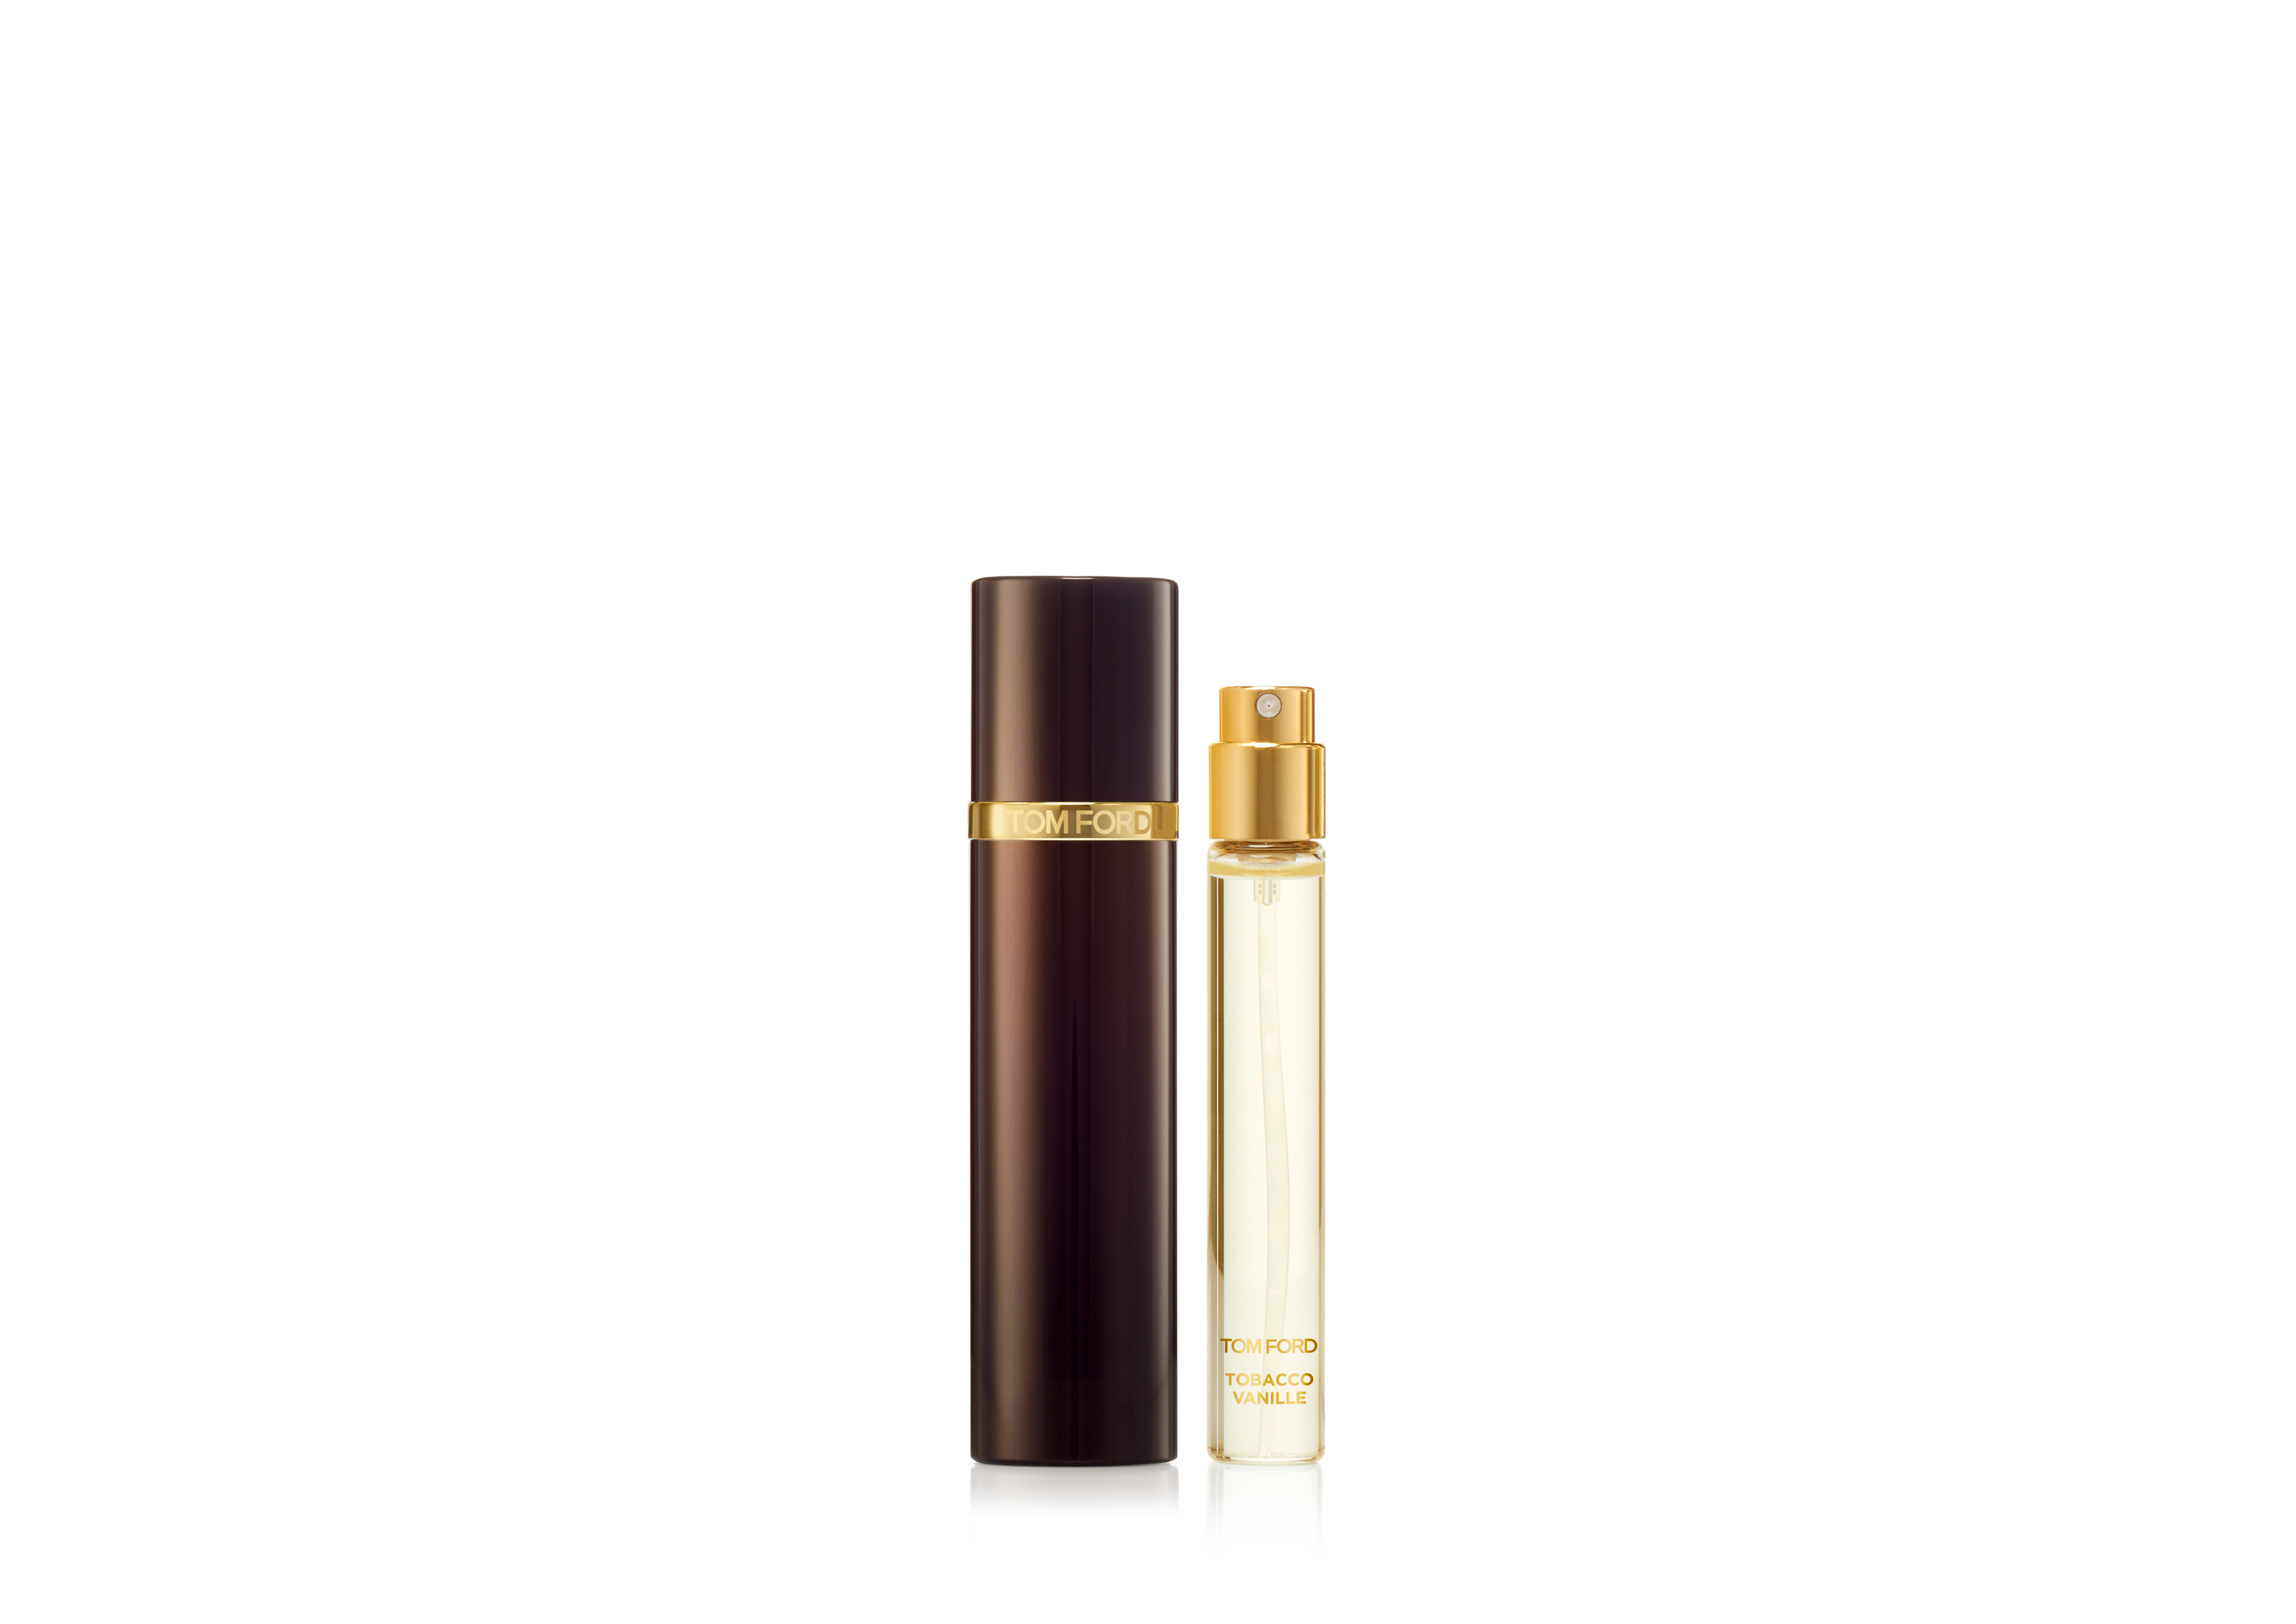 An image of TOM FORD Private Blend Travel Atomizer 10ml - TOBACCO VANILLE